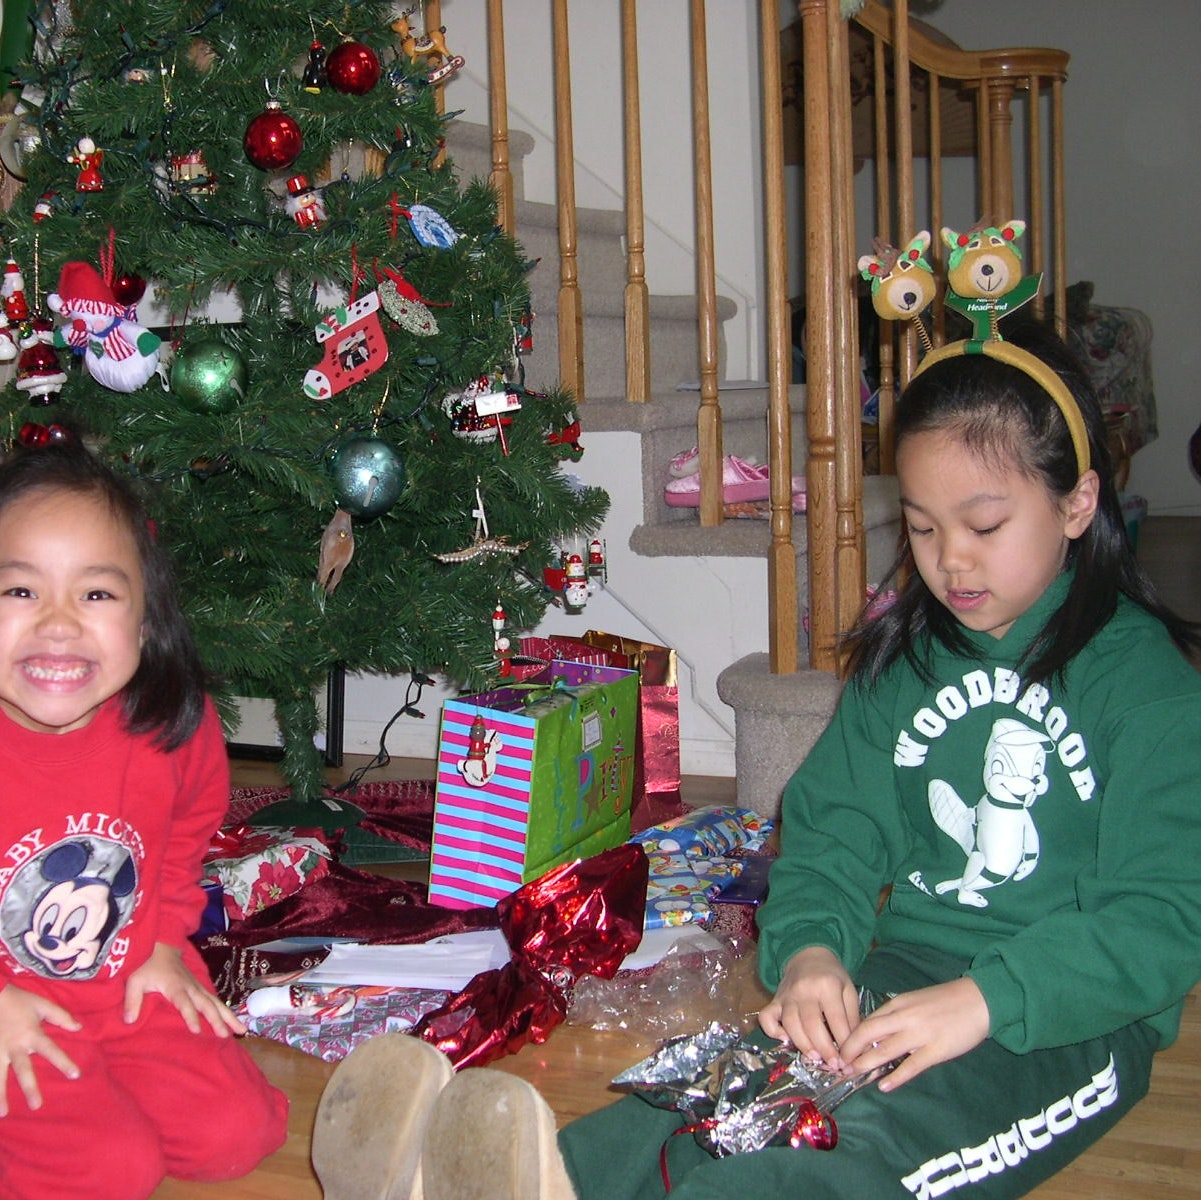 Vanessa Hu and sister sitting around Christmas tree opening gifts